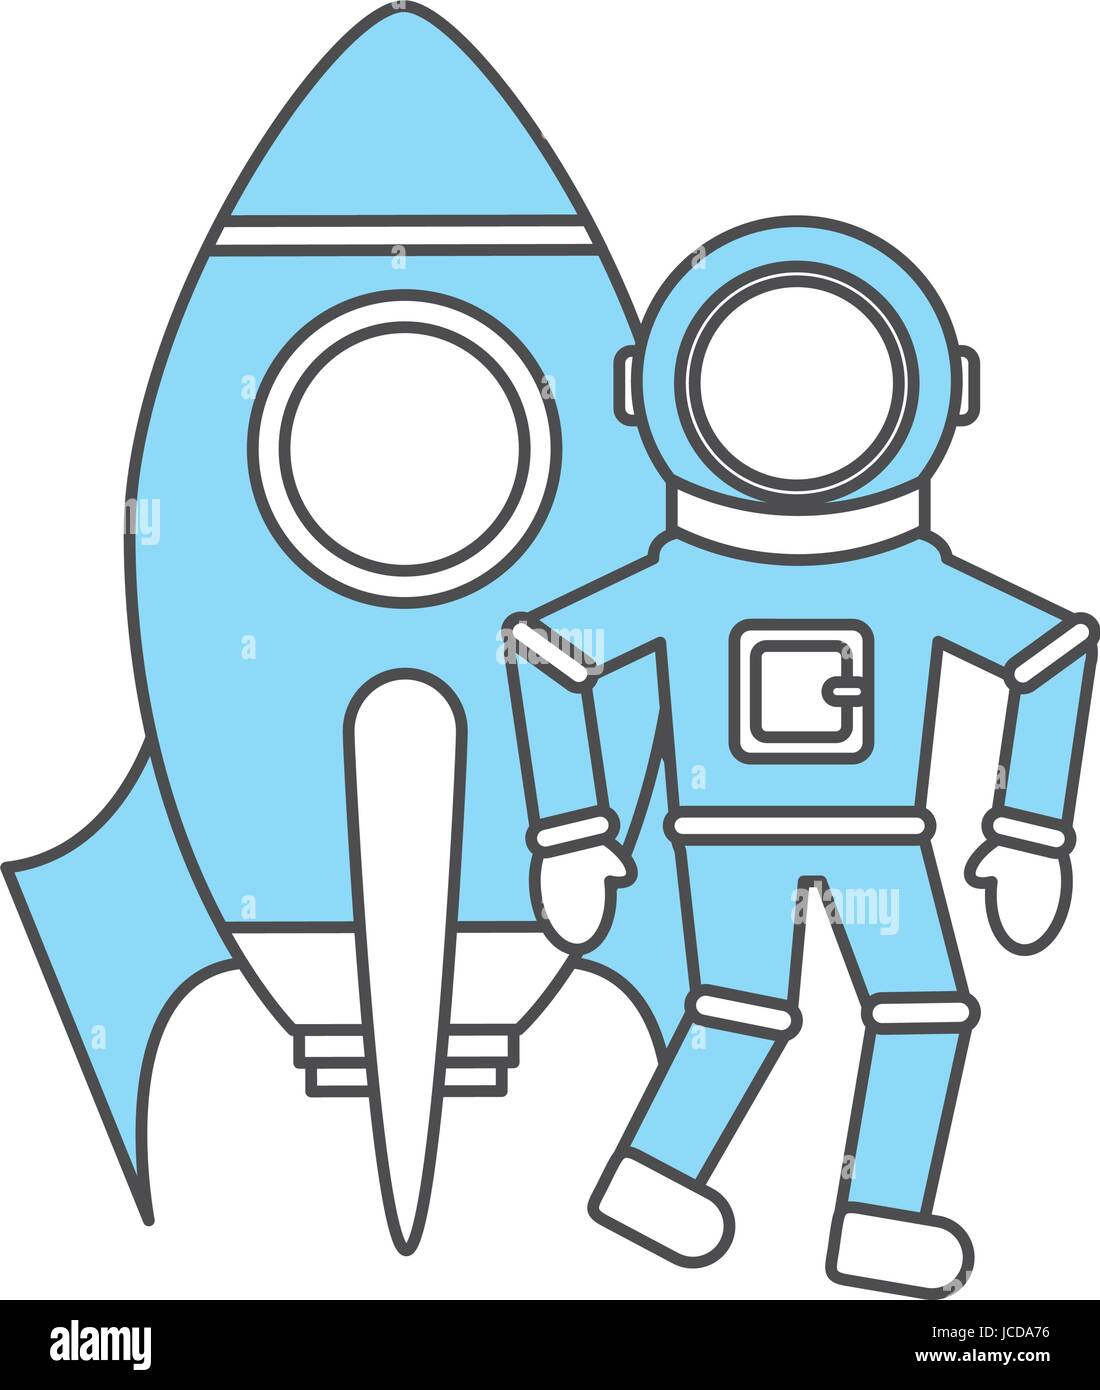 astronaut with rocket comic character icon - Stock Image